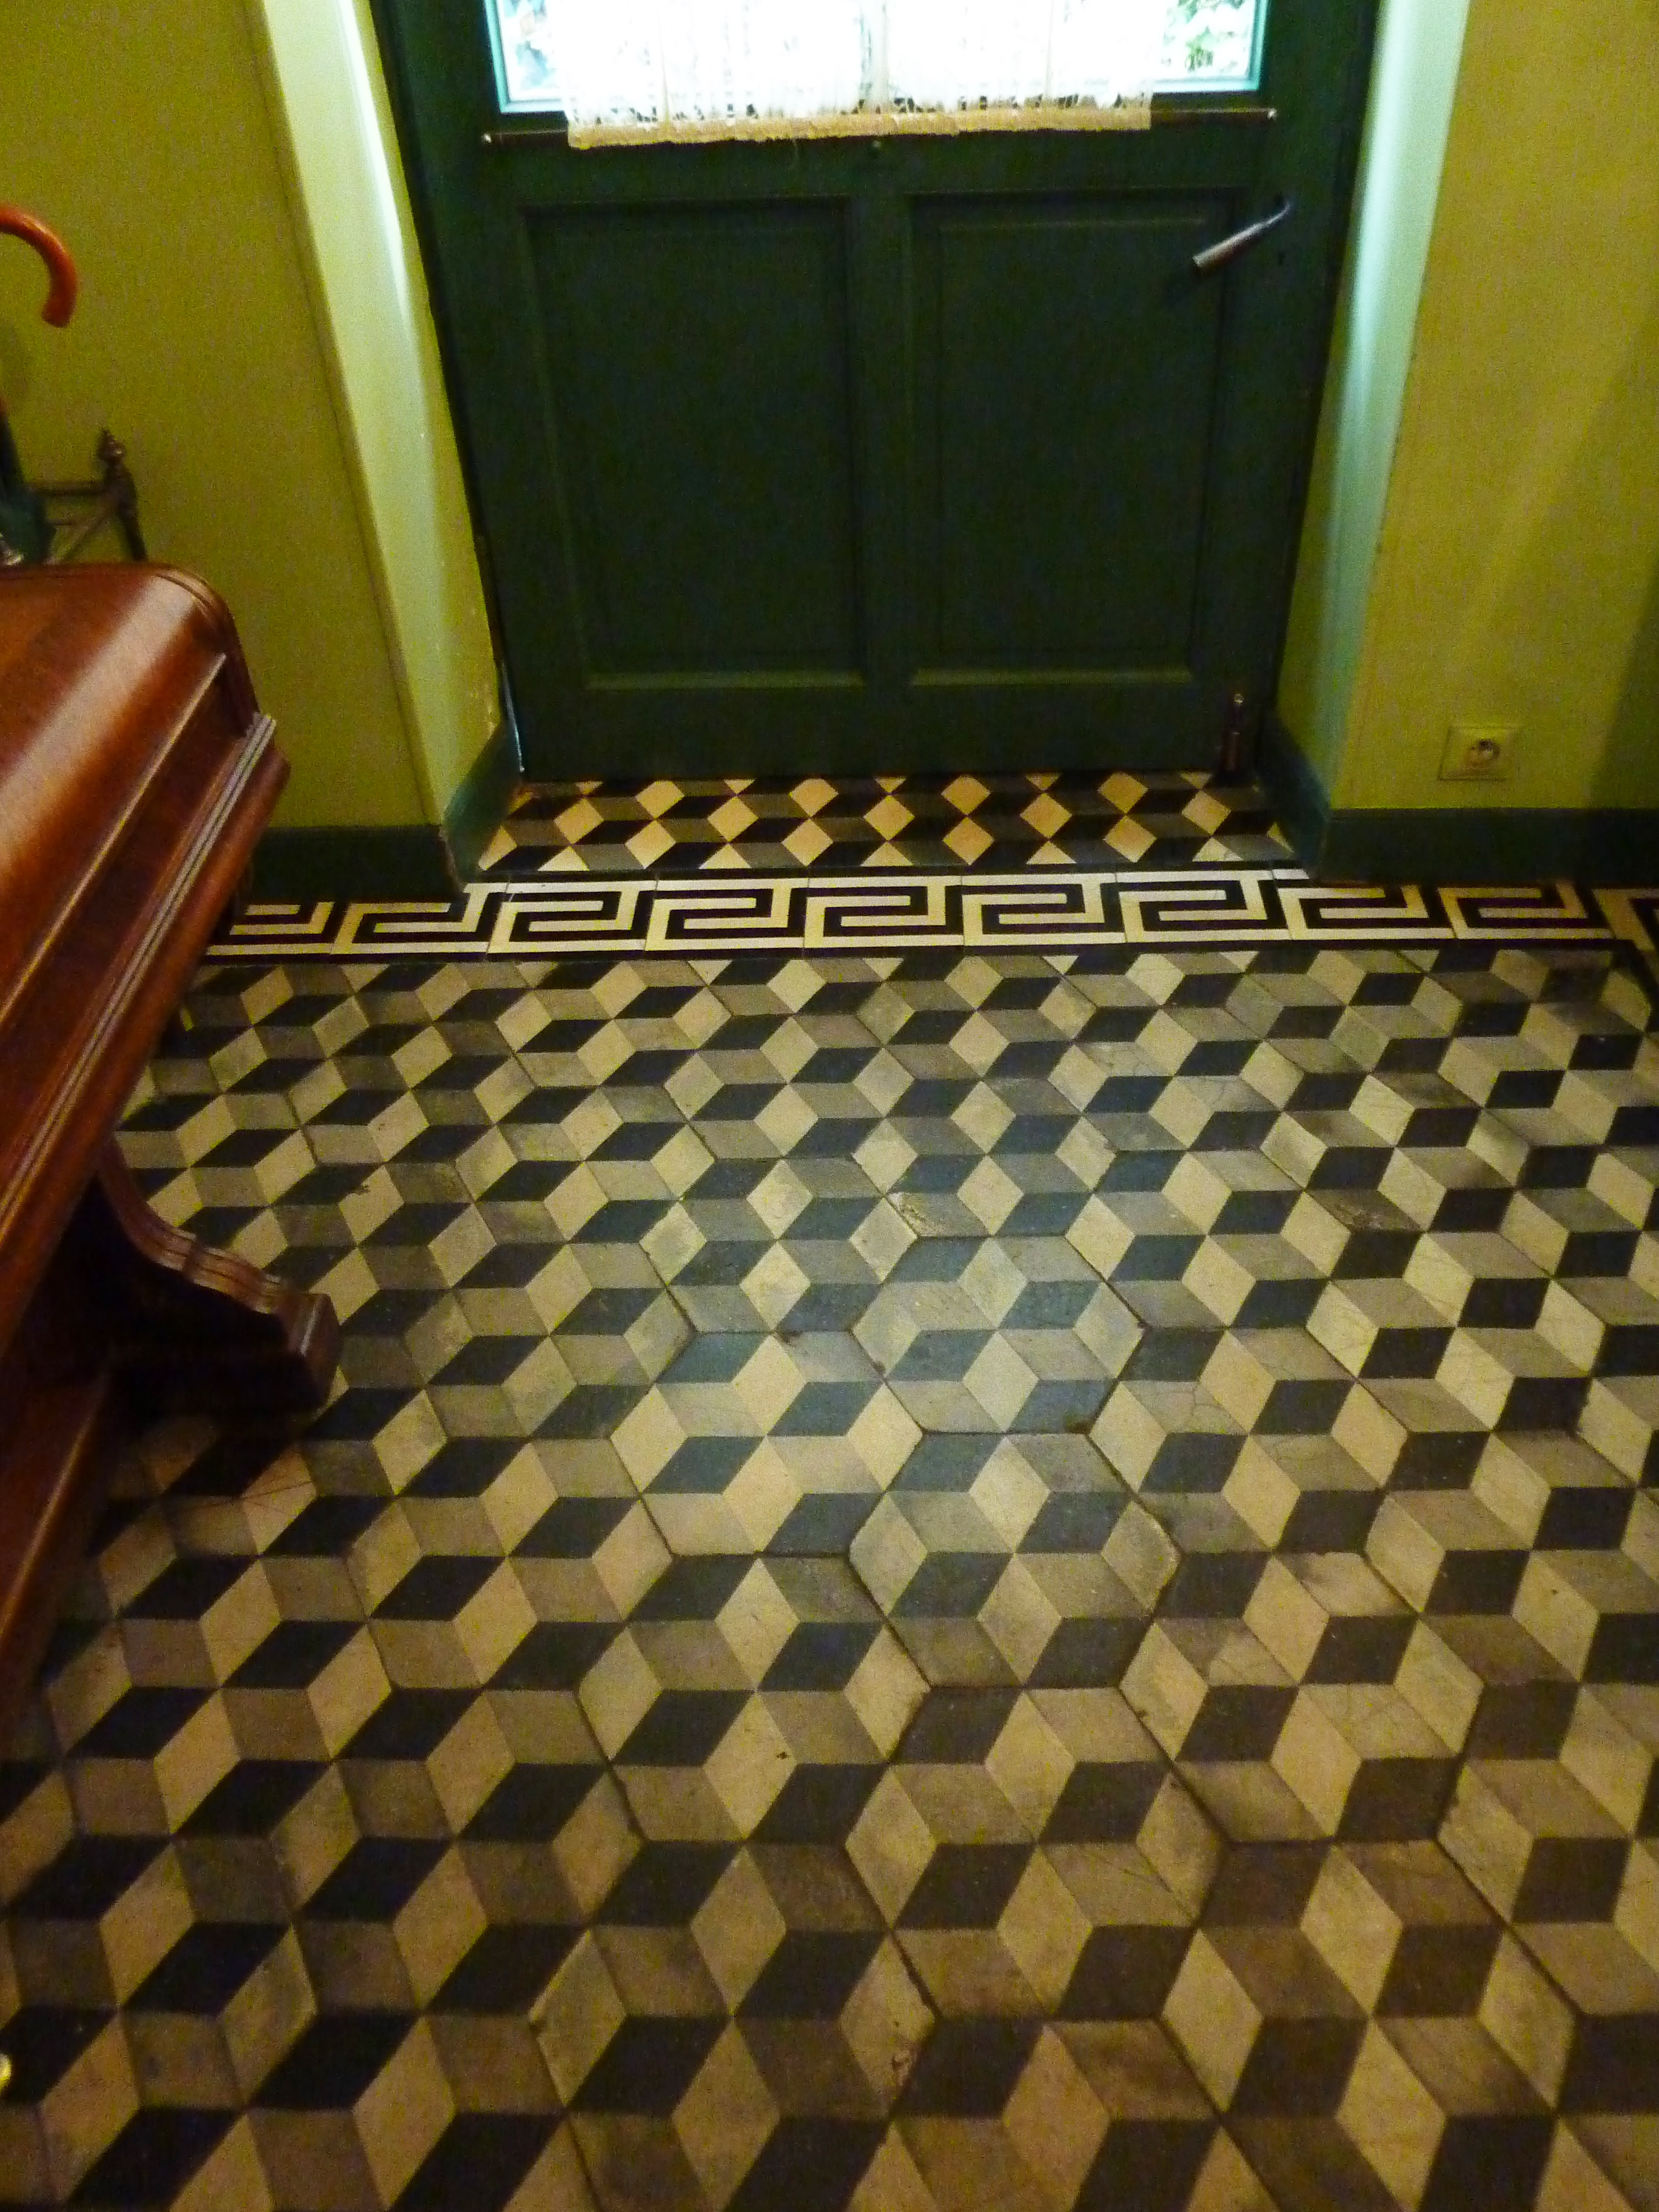 Tesselated Pattern Of Floor Tiles Paris Insights The Blog Paris